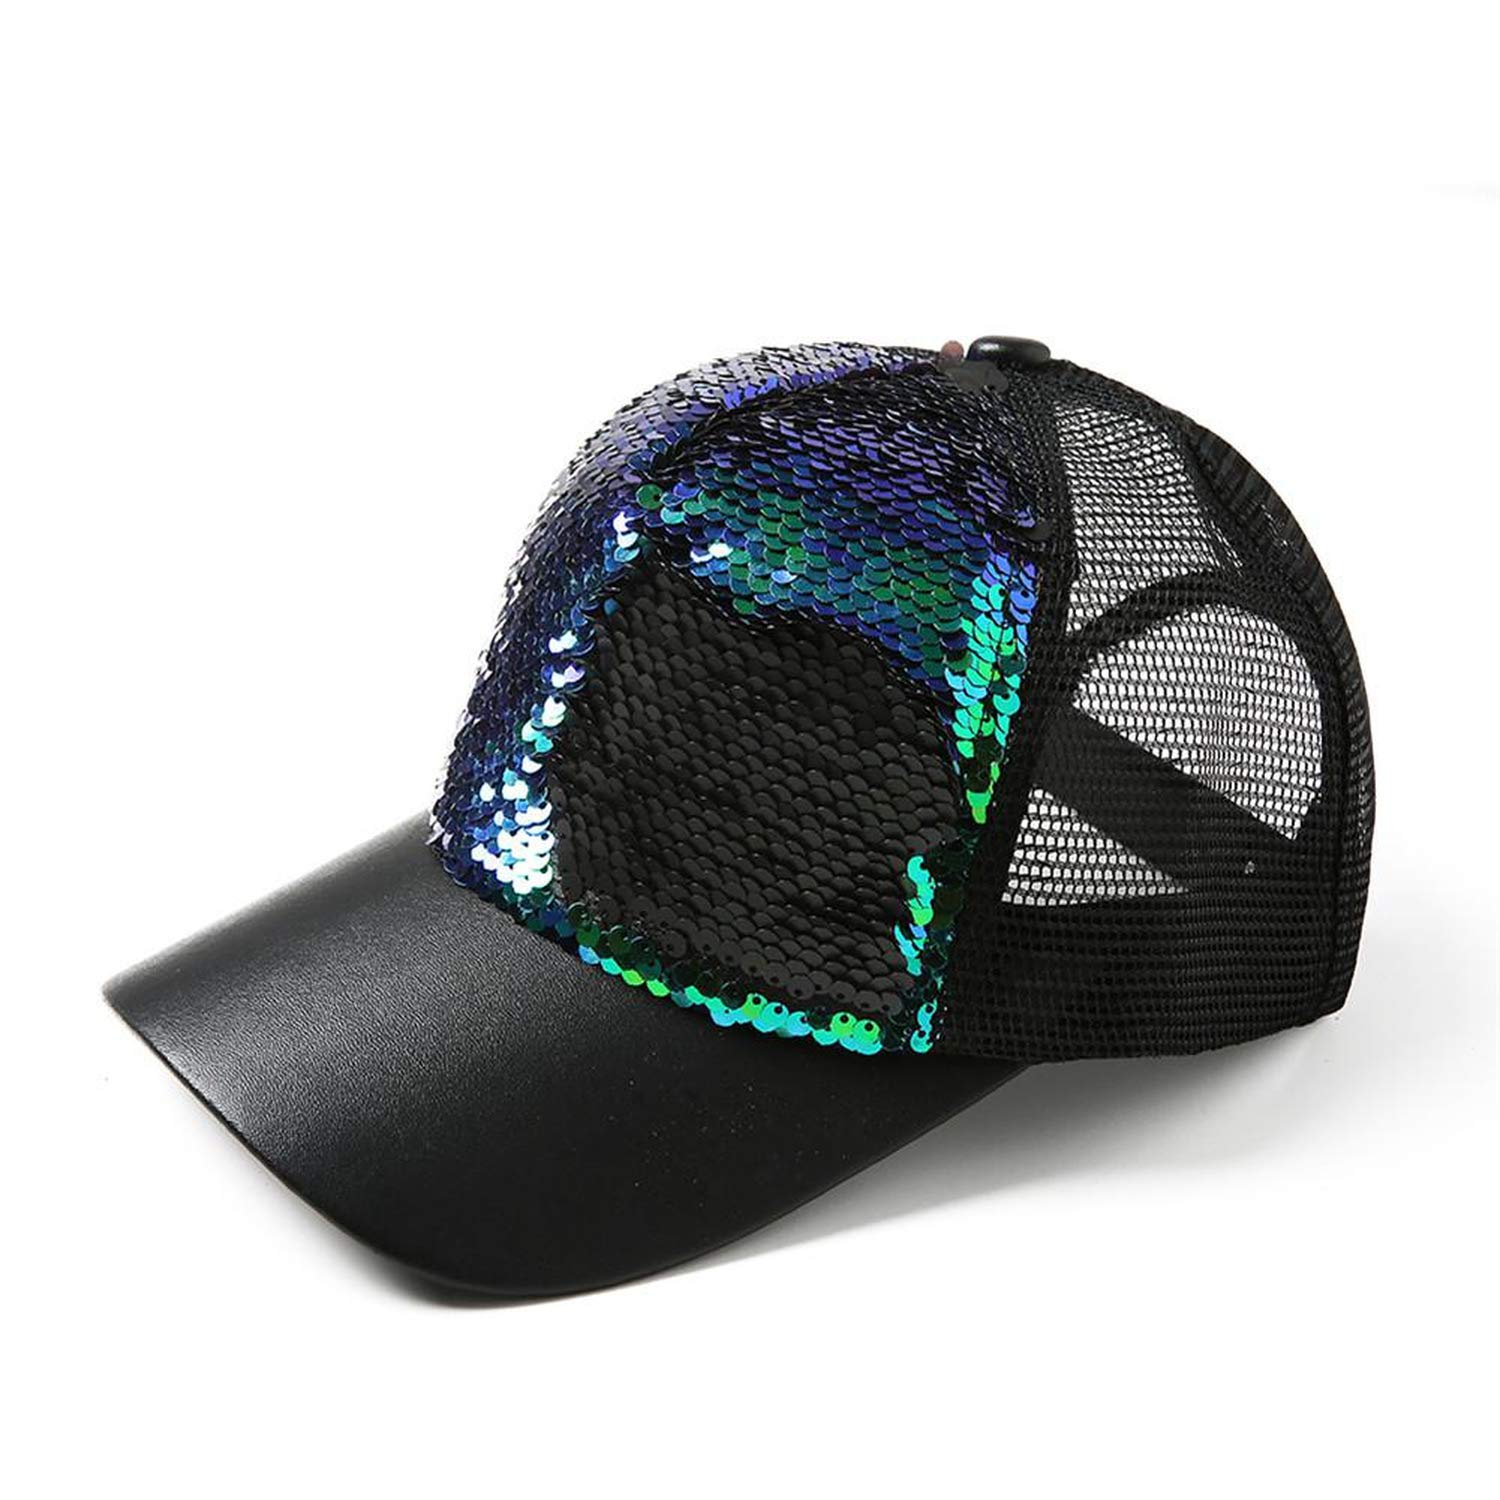 Amazon.com: LONIY 2019 New Sequins Paillette Bling Shinning Mesh Baseball Cap Striking Pretty Adjustable Women Man Hats Black: Clothing